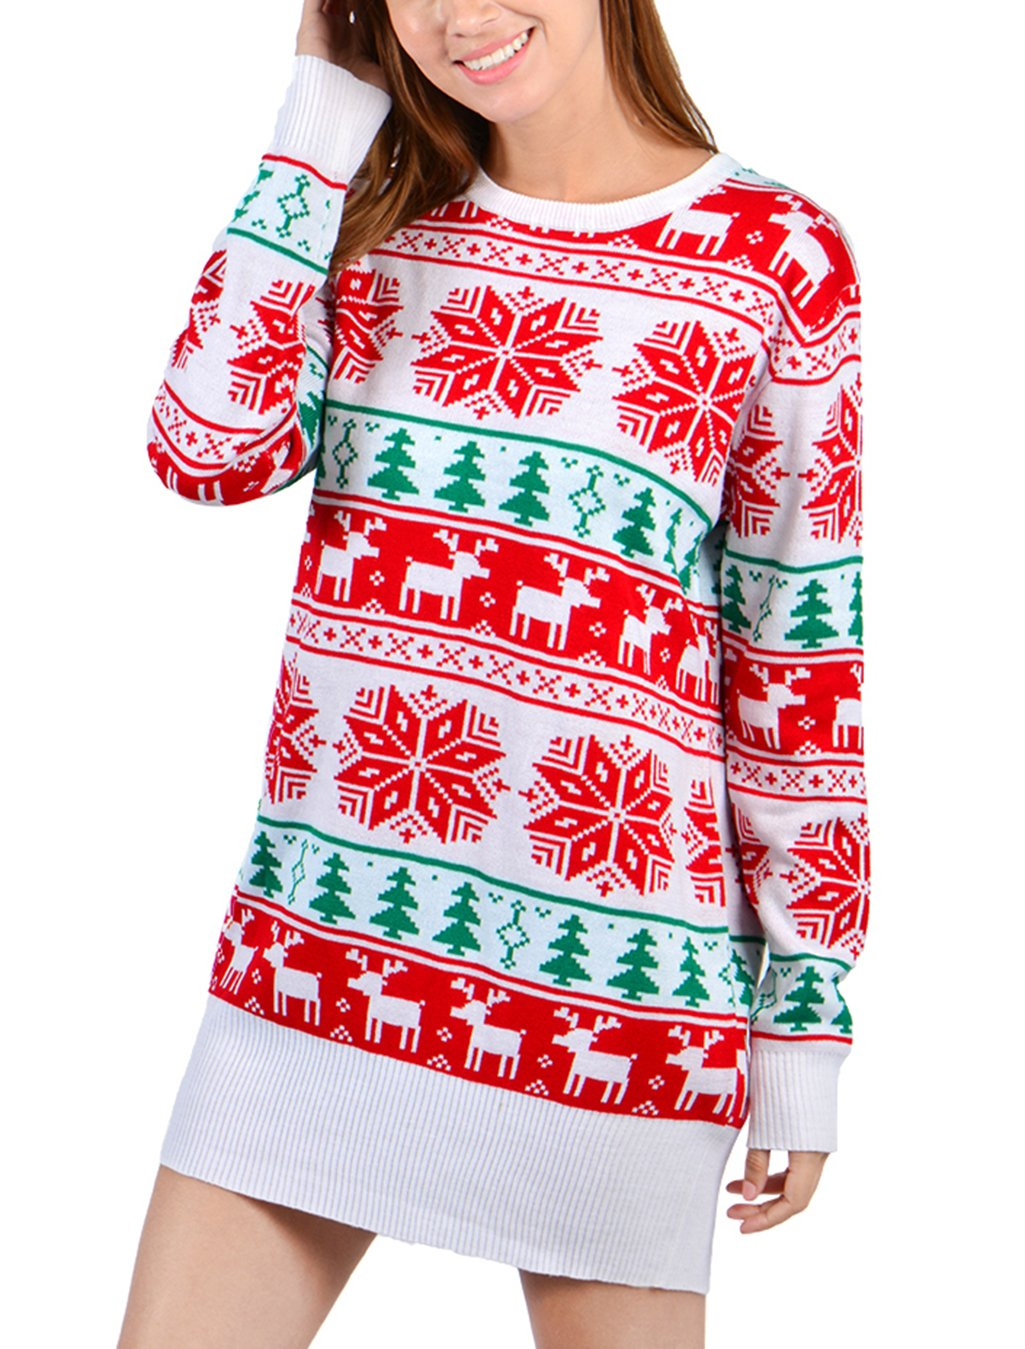 Idgreatim Women Ladies Christmas Reindeer Snowflake Knit Long Sleeve Tunic Sweater Dress Red Medium